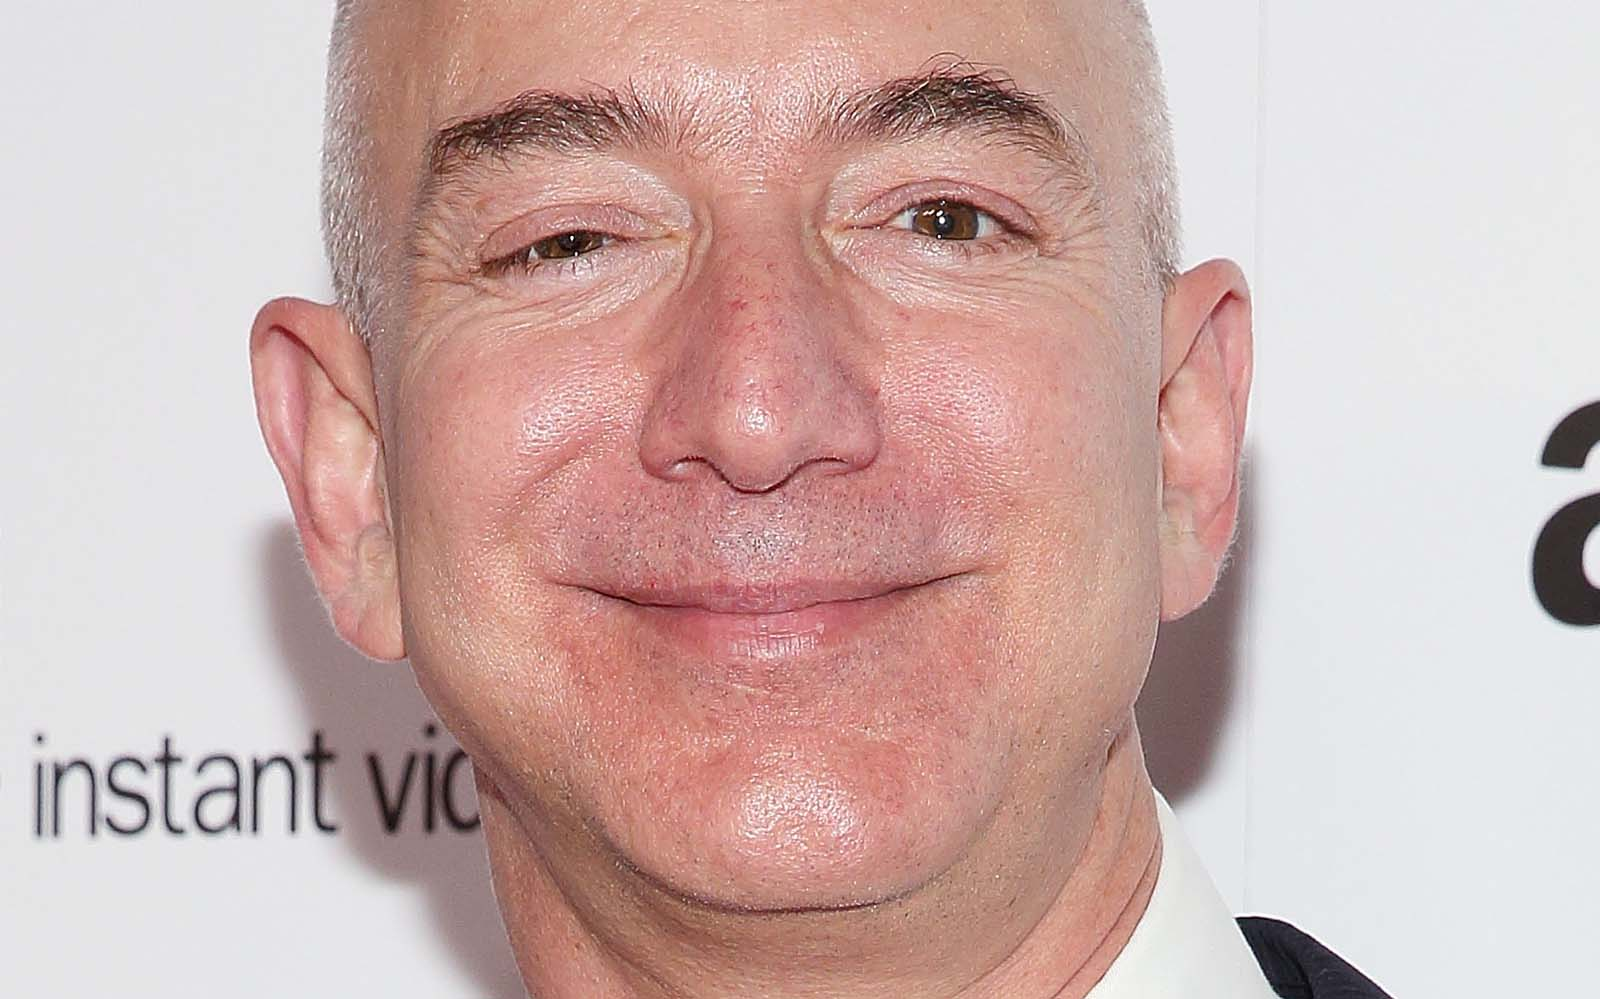 Jeff Bezos is worth over $100 billion after Amazon's Black Friday rally